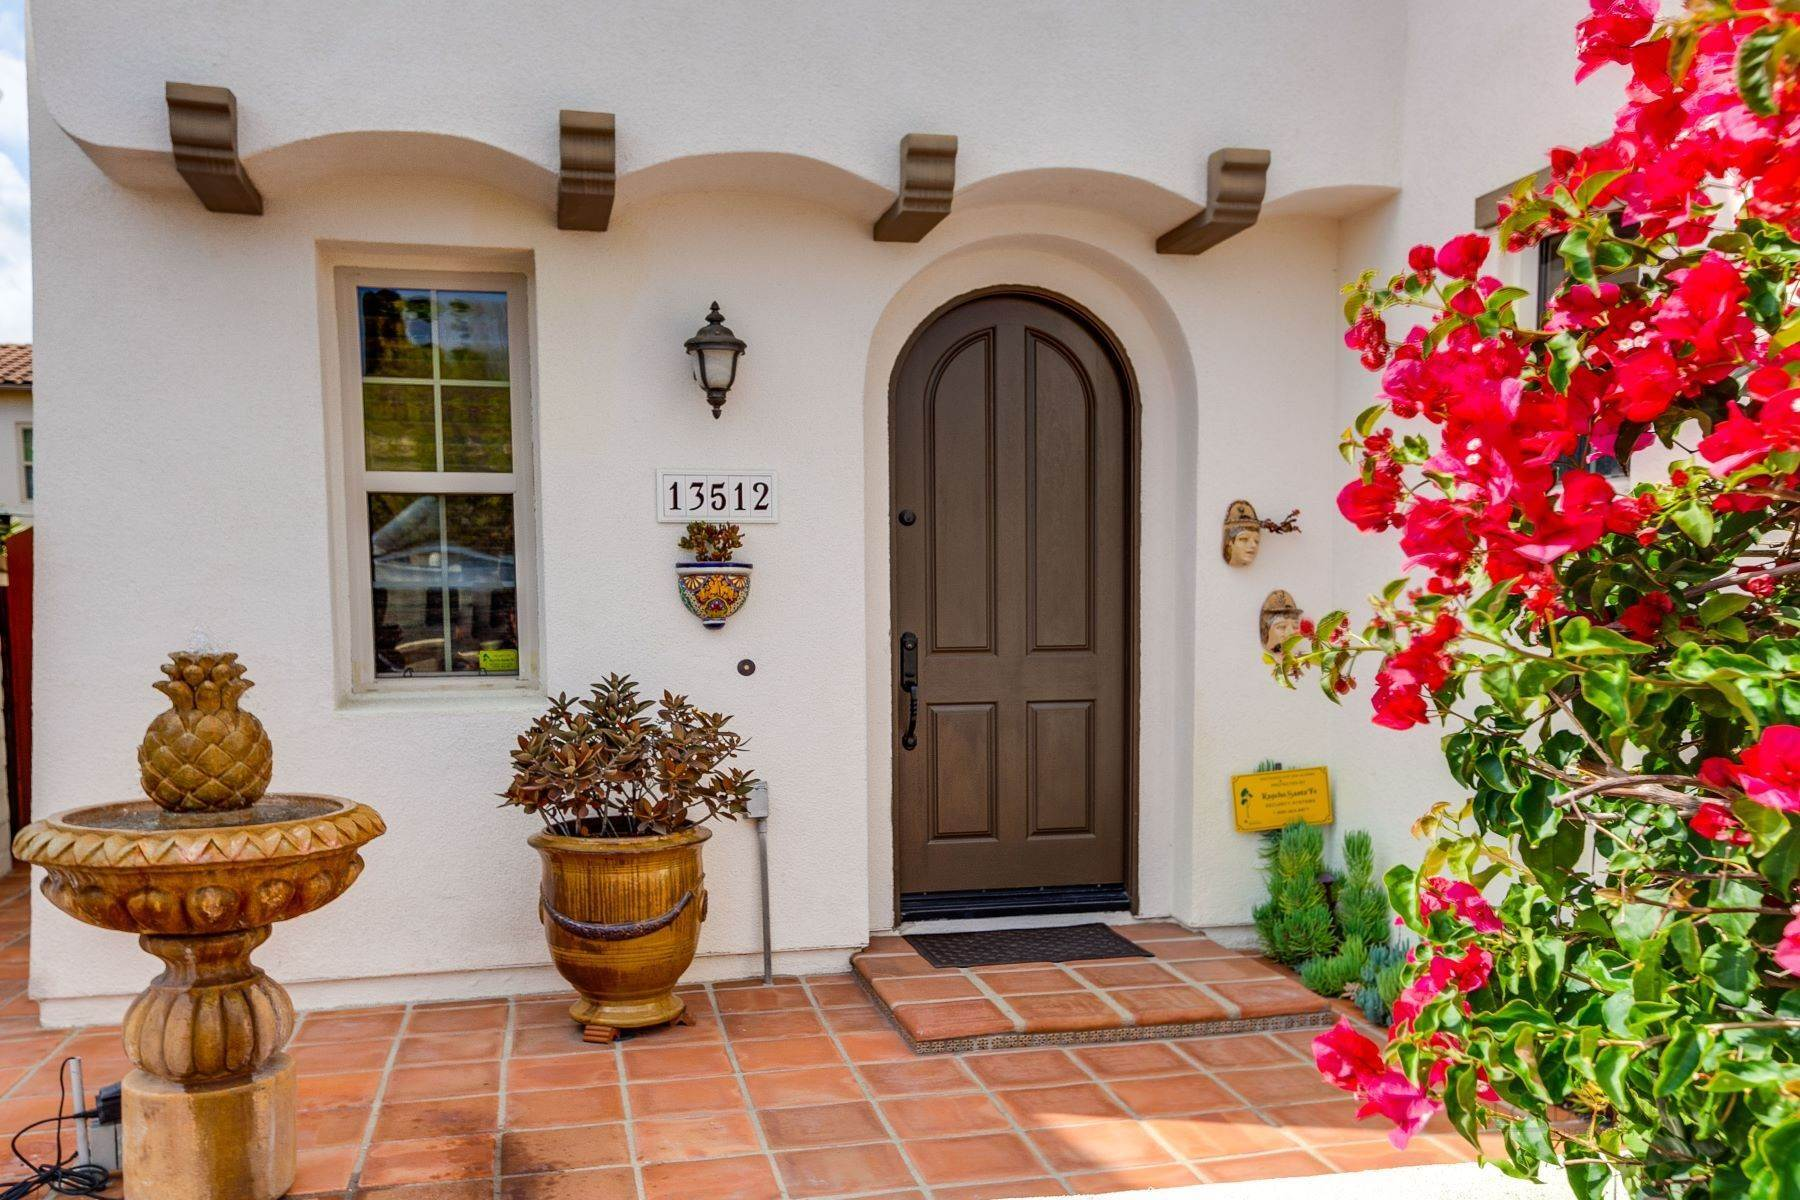 7. Single Family Homes for Sale at 13512 Moonflower Meadows Trail, San Diego, CA 92130 13512 Moonflower Meadows Trail San Diego, California 92130 United States